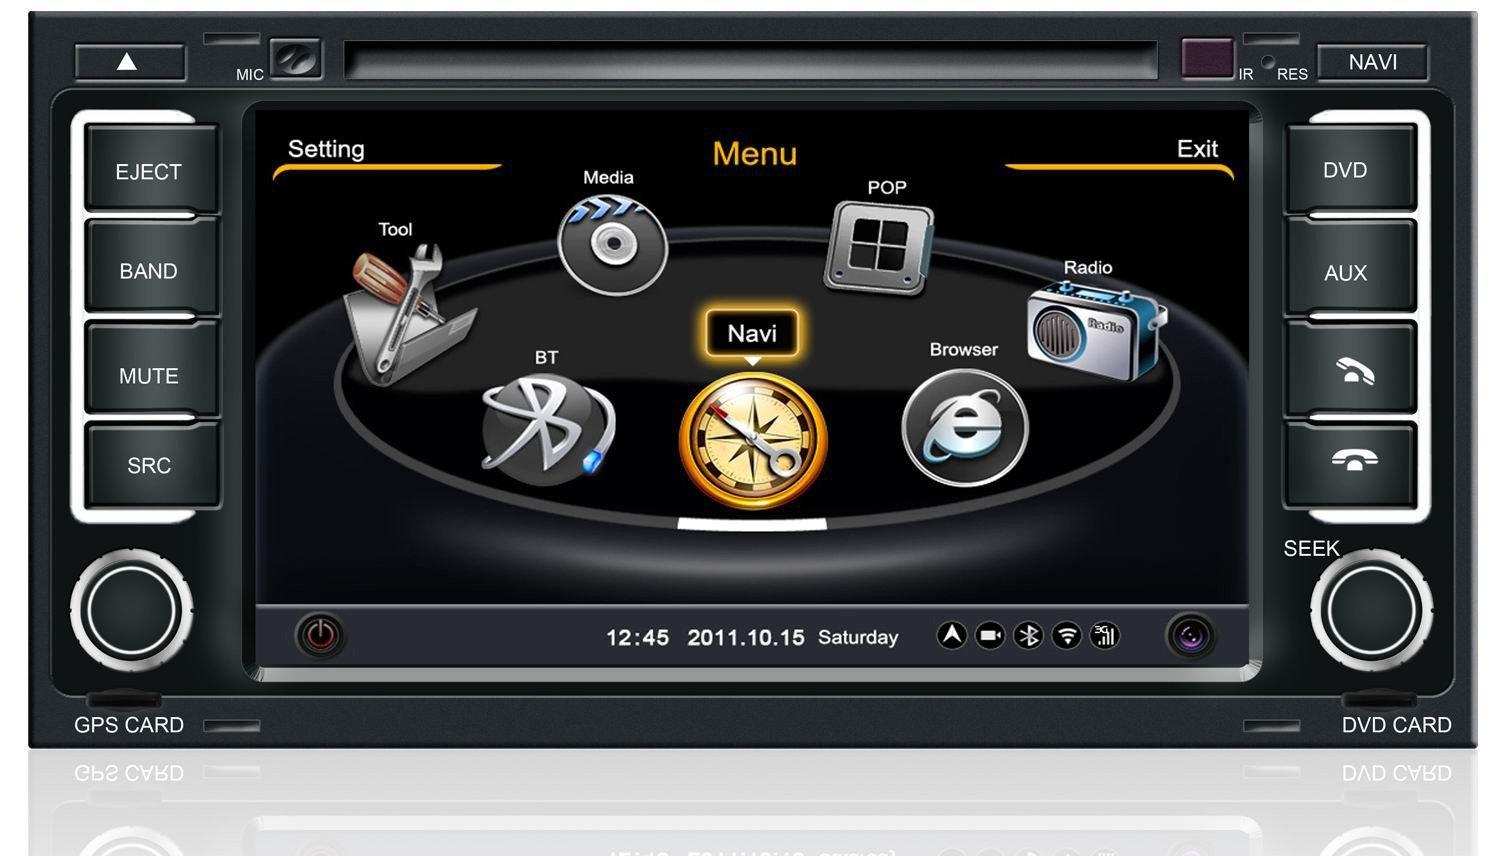 poste volkswagen touareg t5 autoradio gps dvd usb volkswagen bluetooth autoradios. Black Bedroom Furniture Sets. Home Design Ideas